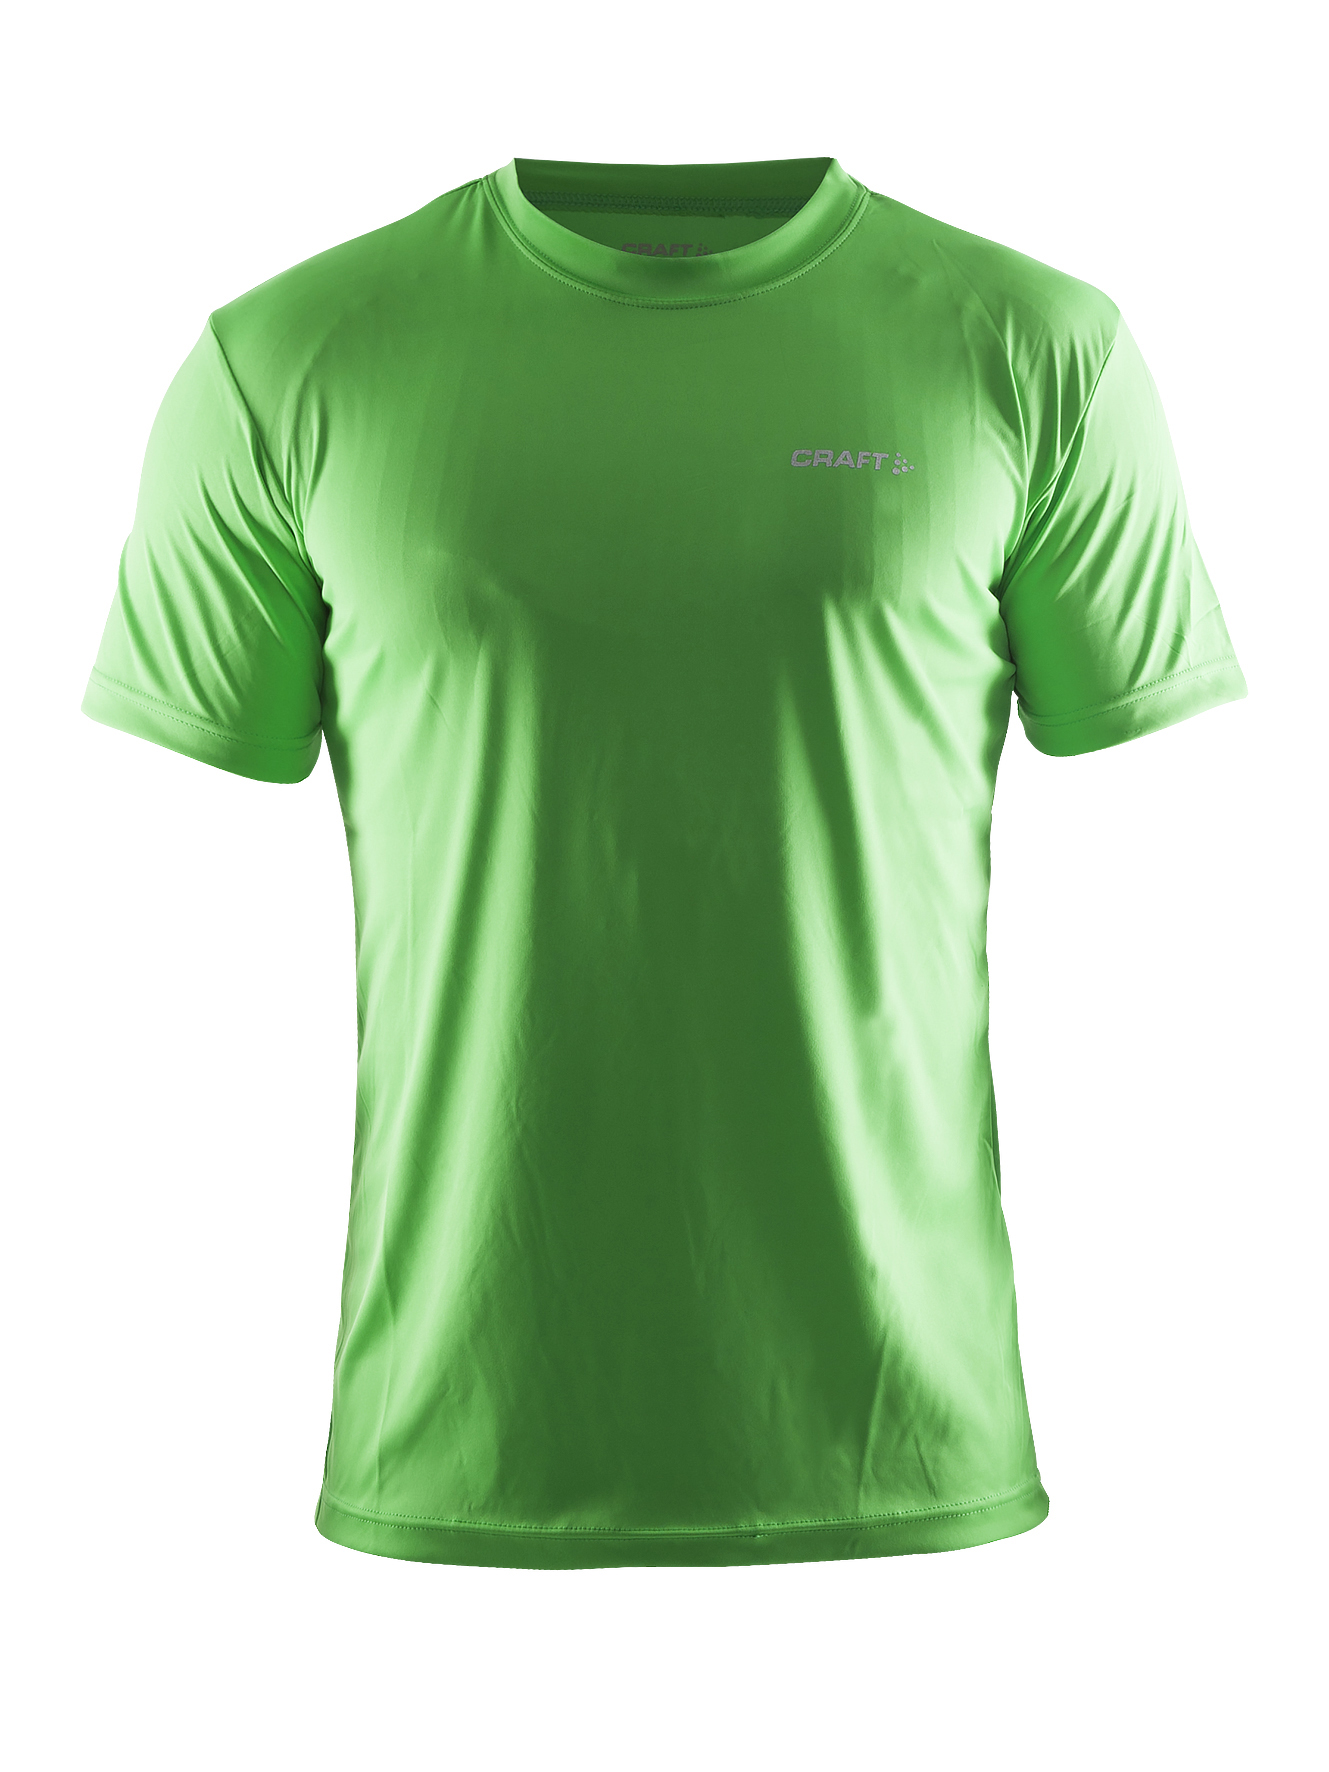 Craft Prime Tee men Craft green 3xl Craft green